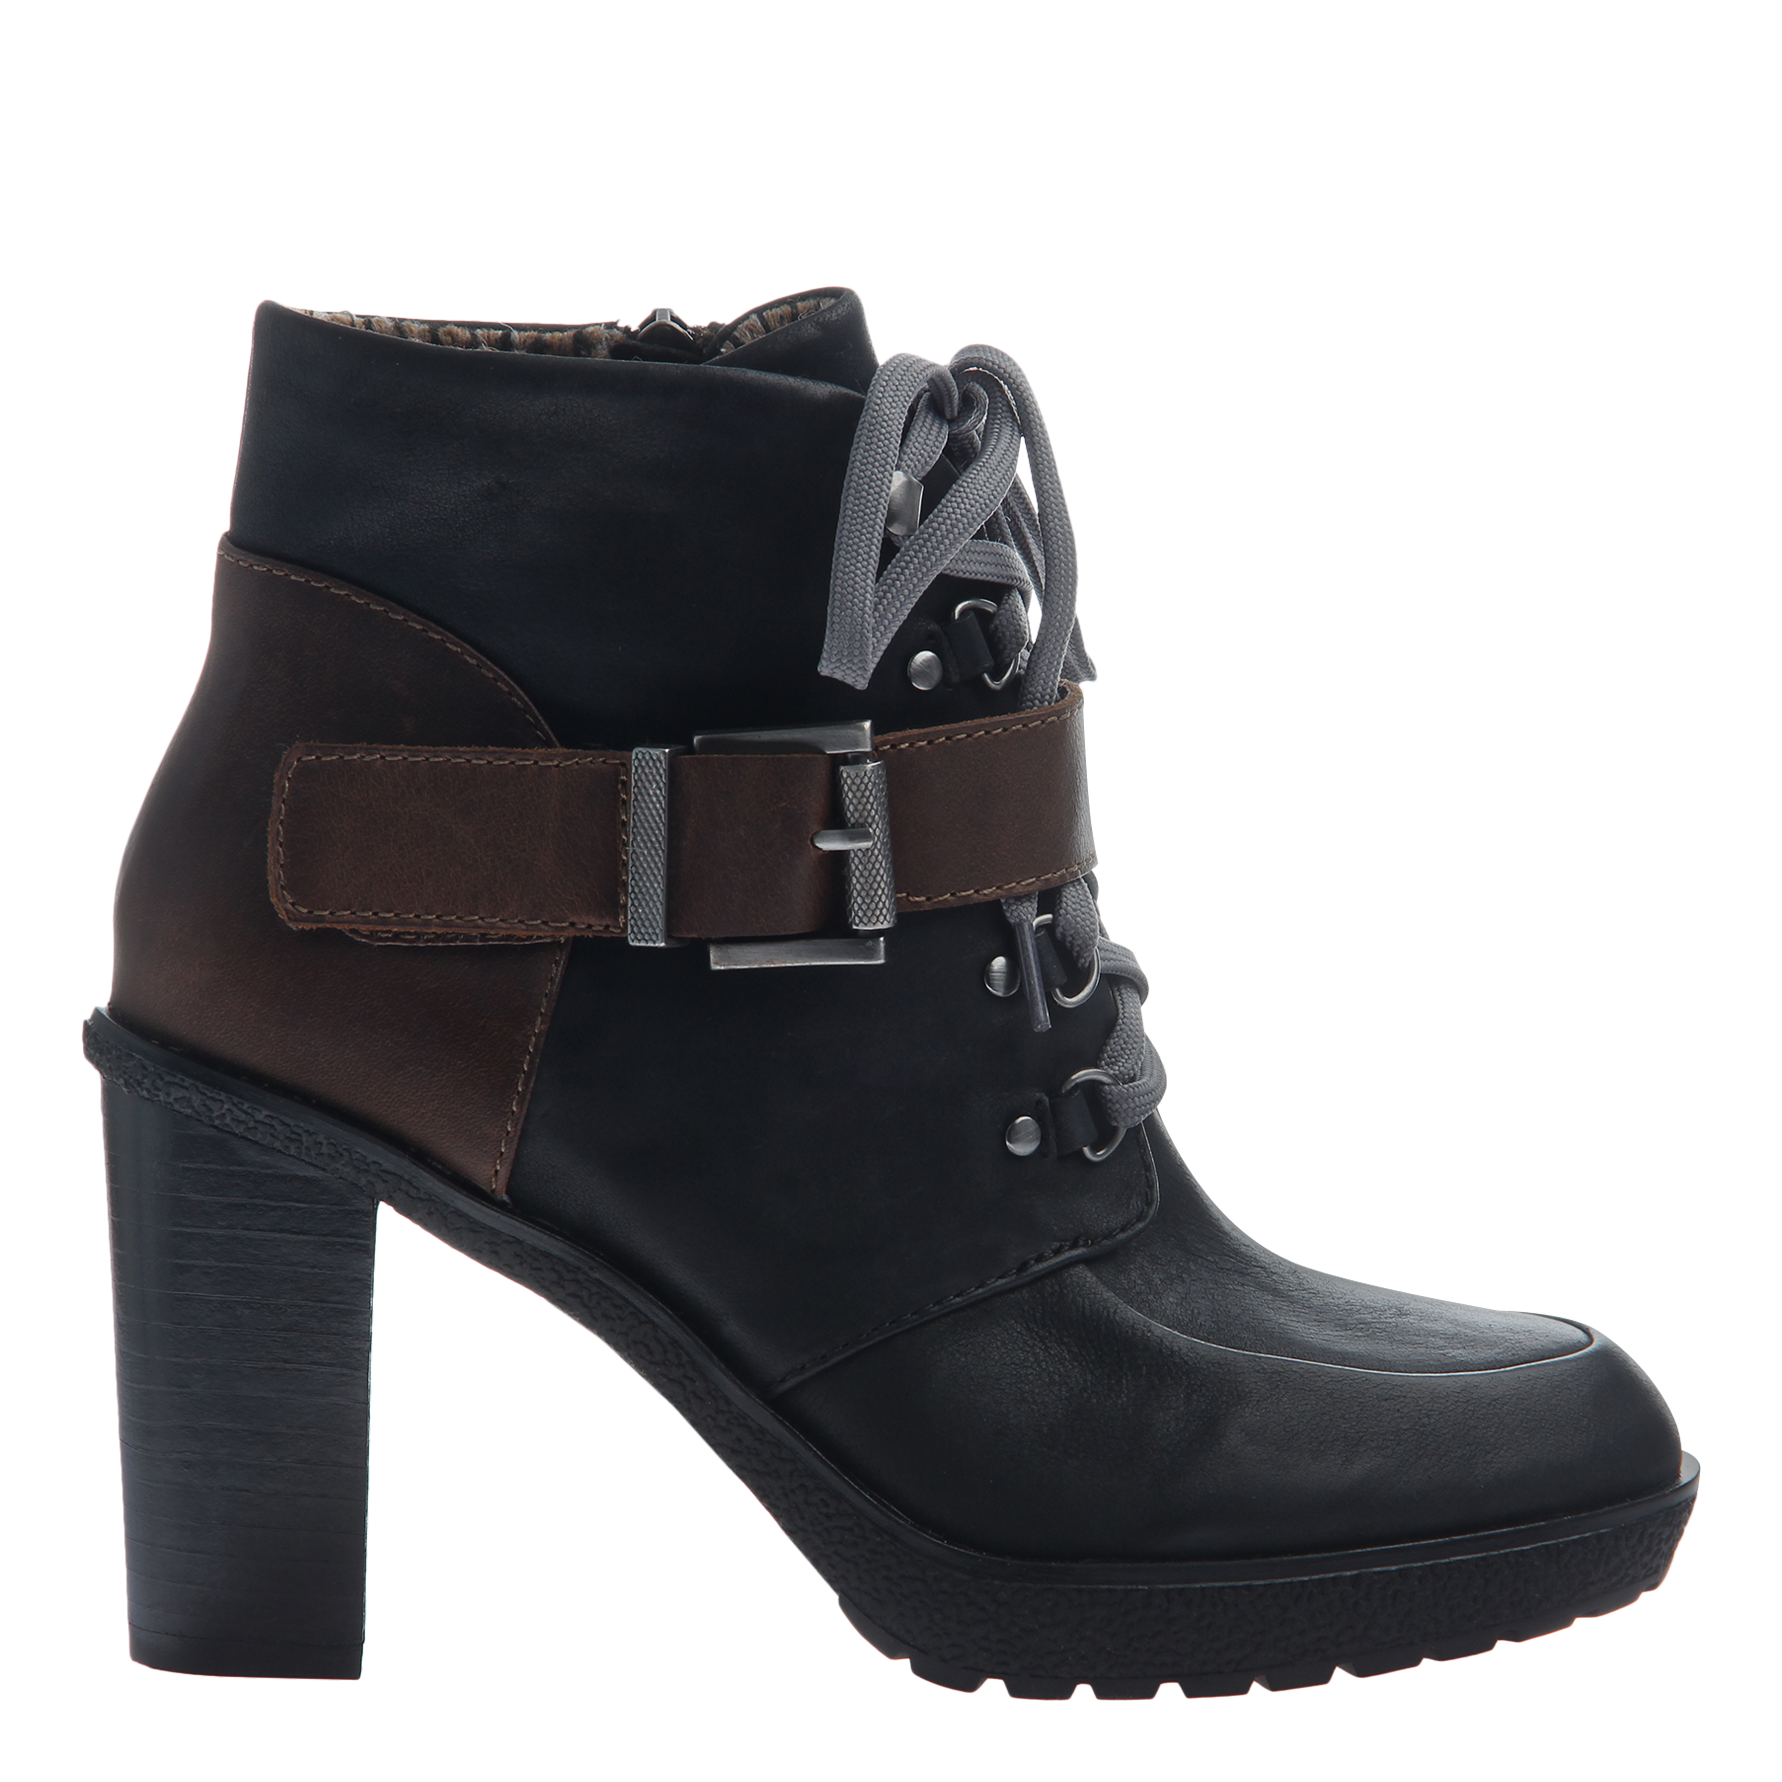 Womens ankle boot Sylvie in black side view